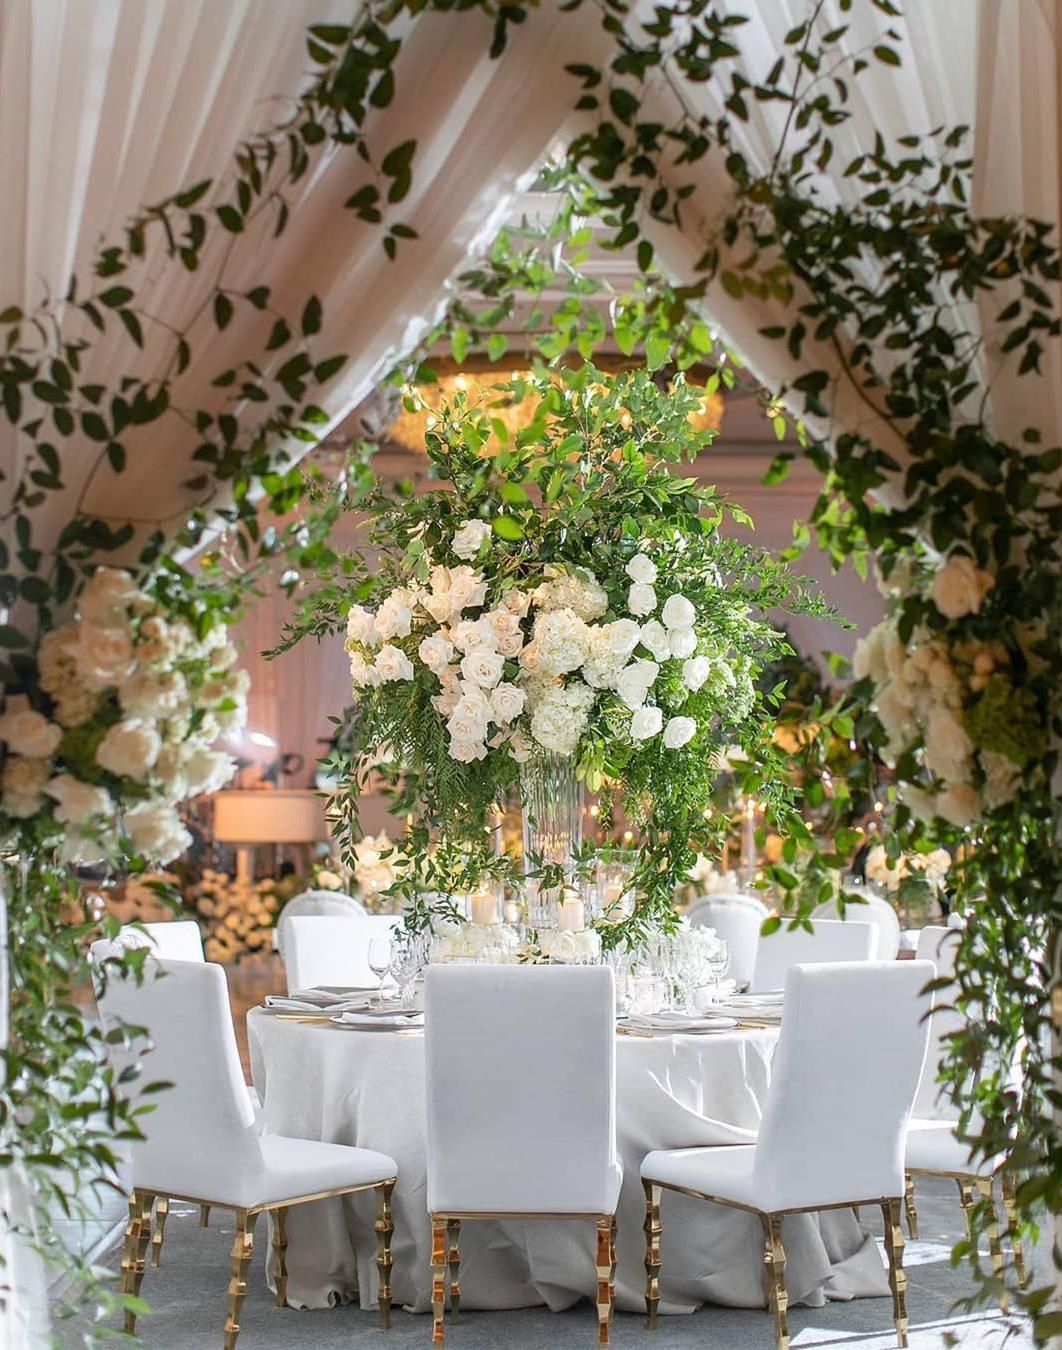 56 Easy Ways To Decorate Your Wedding Reception Wedding Decor Ideas Wedding Decoration Ideas On A In 2020 Wedding Inside Wedding Decorations On A Budget Dining Design